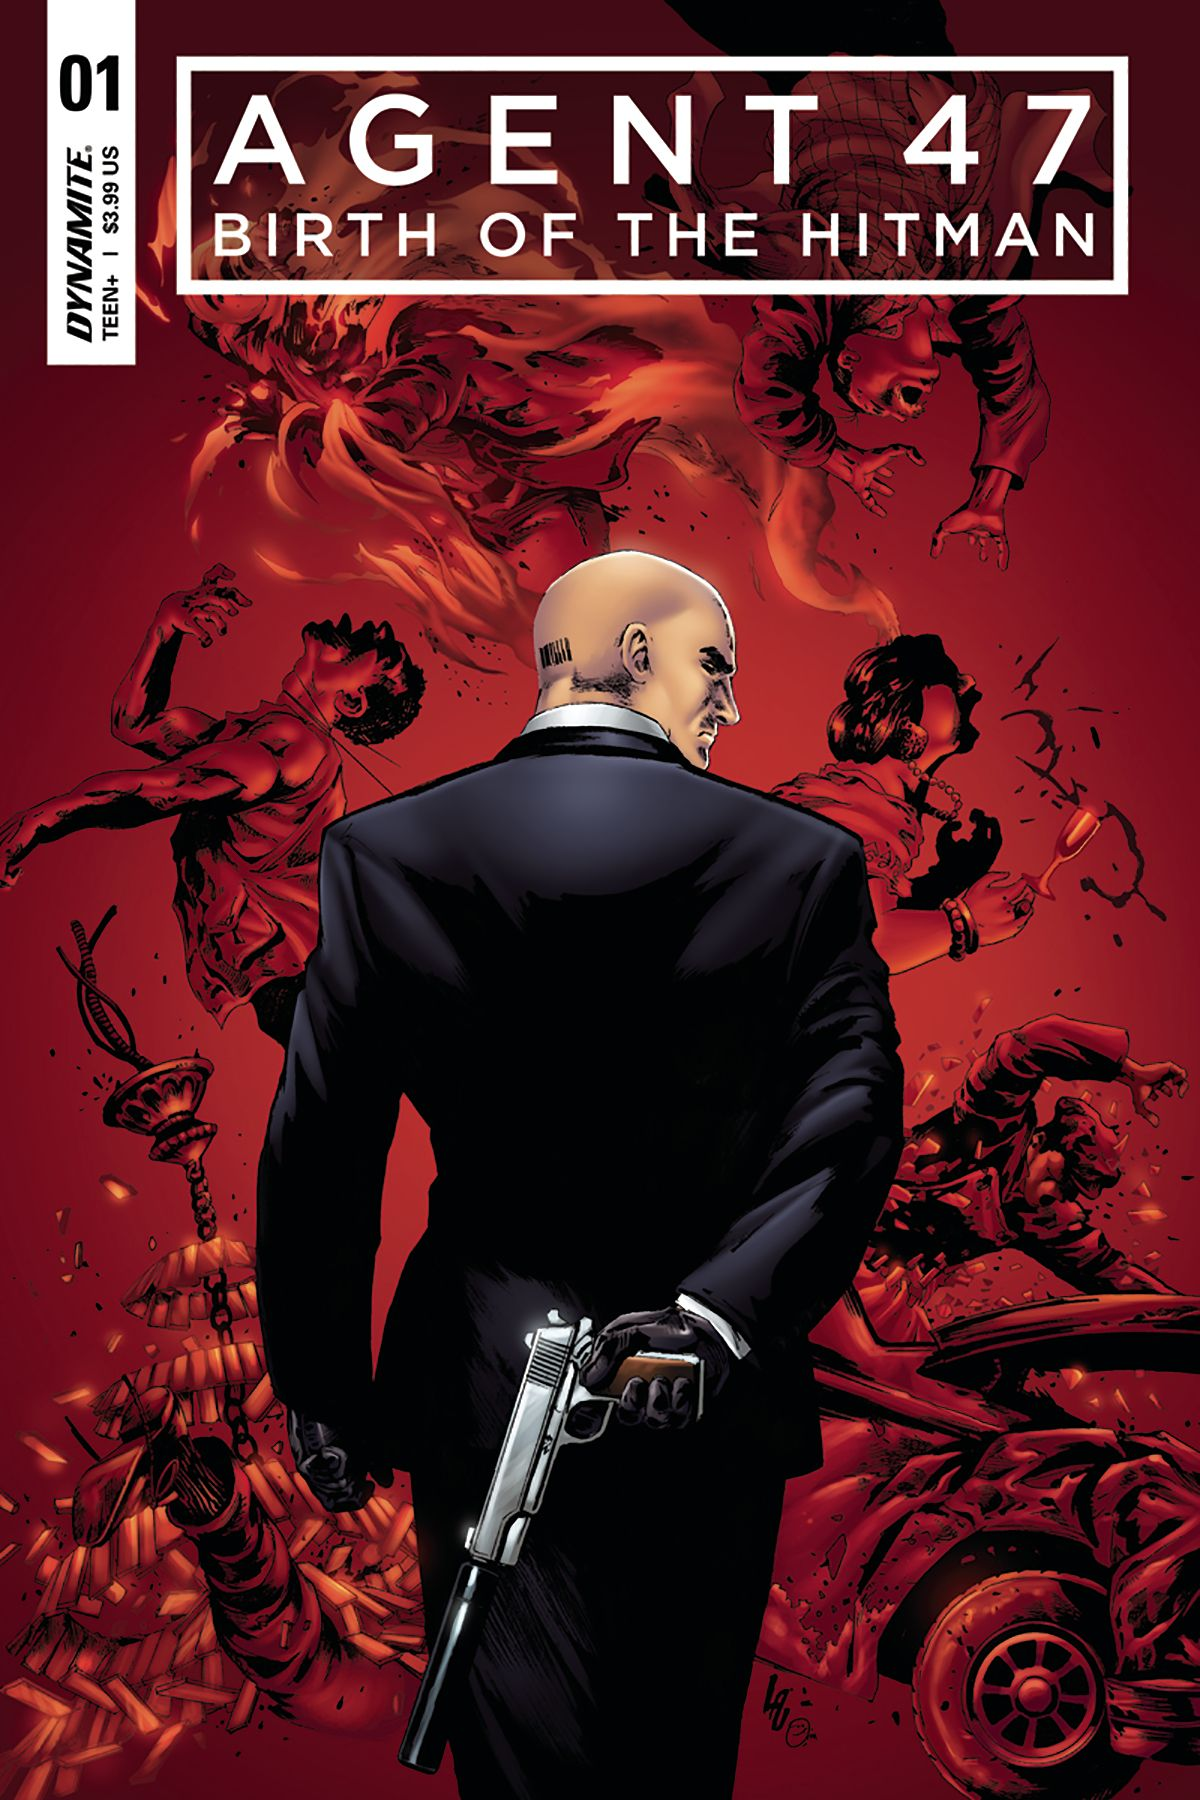 Book Cover Art Zip : Agent birth of hitman cvr b lau other comic book